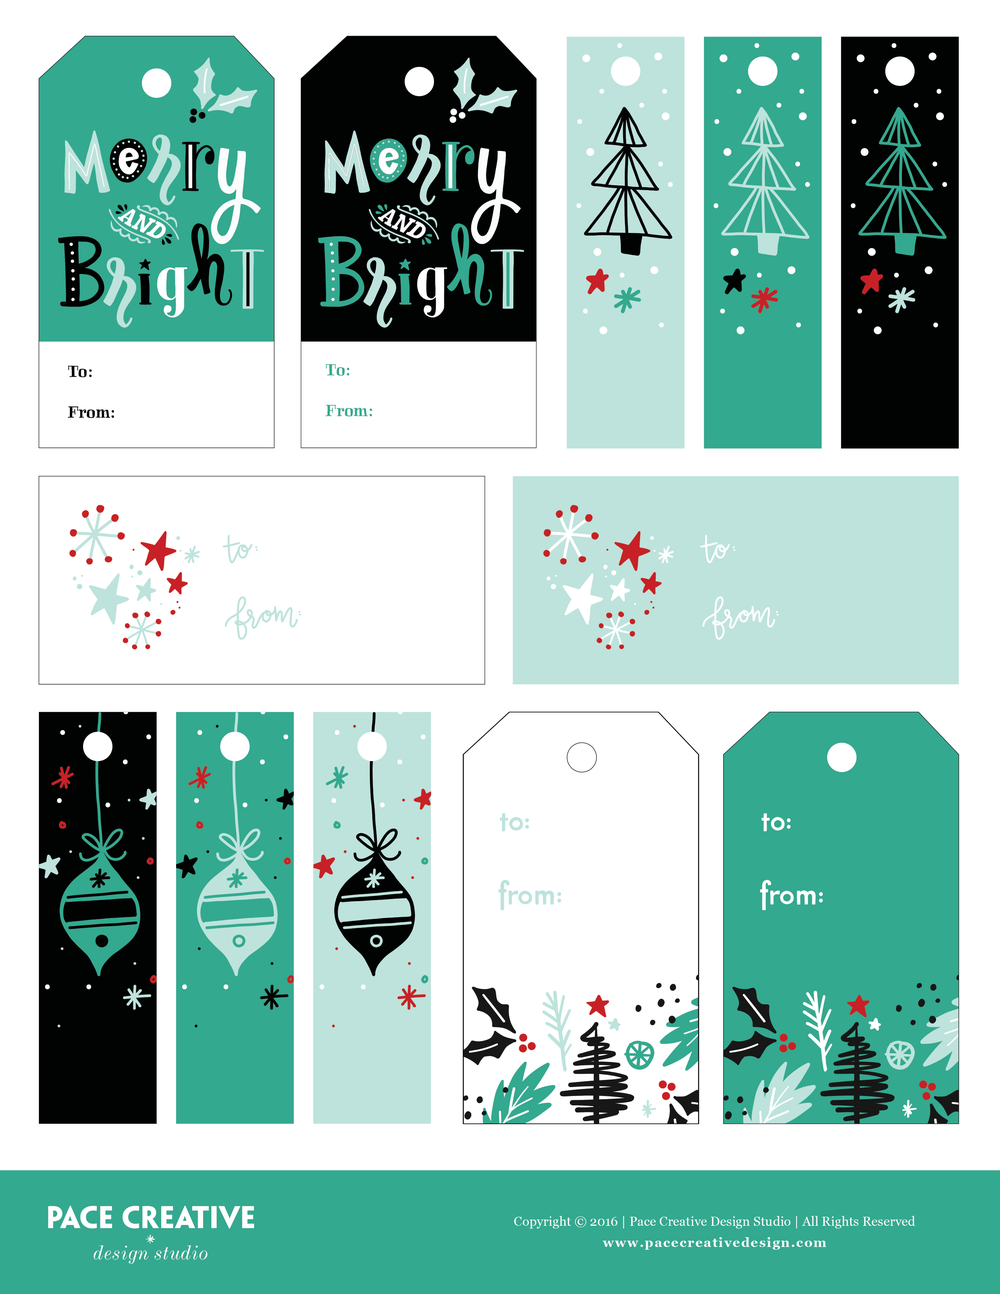 FREE holiday tags printable by Pace Creative Design Studio